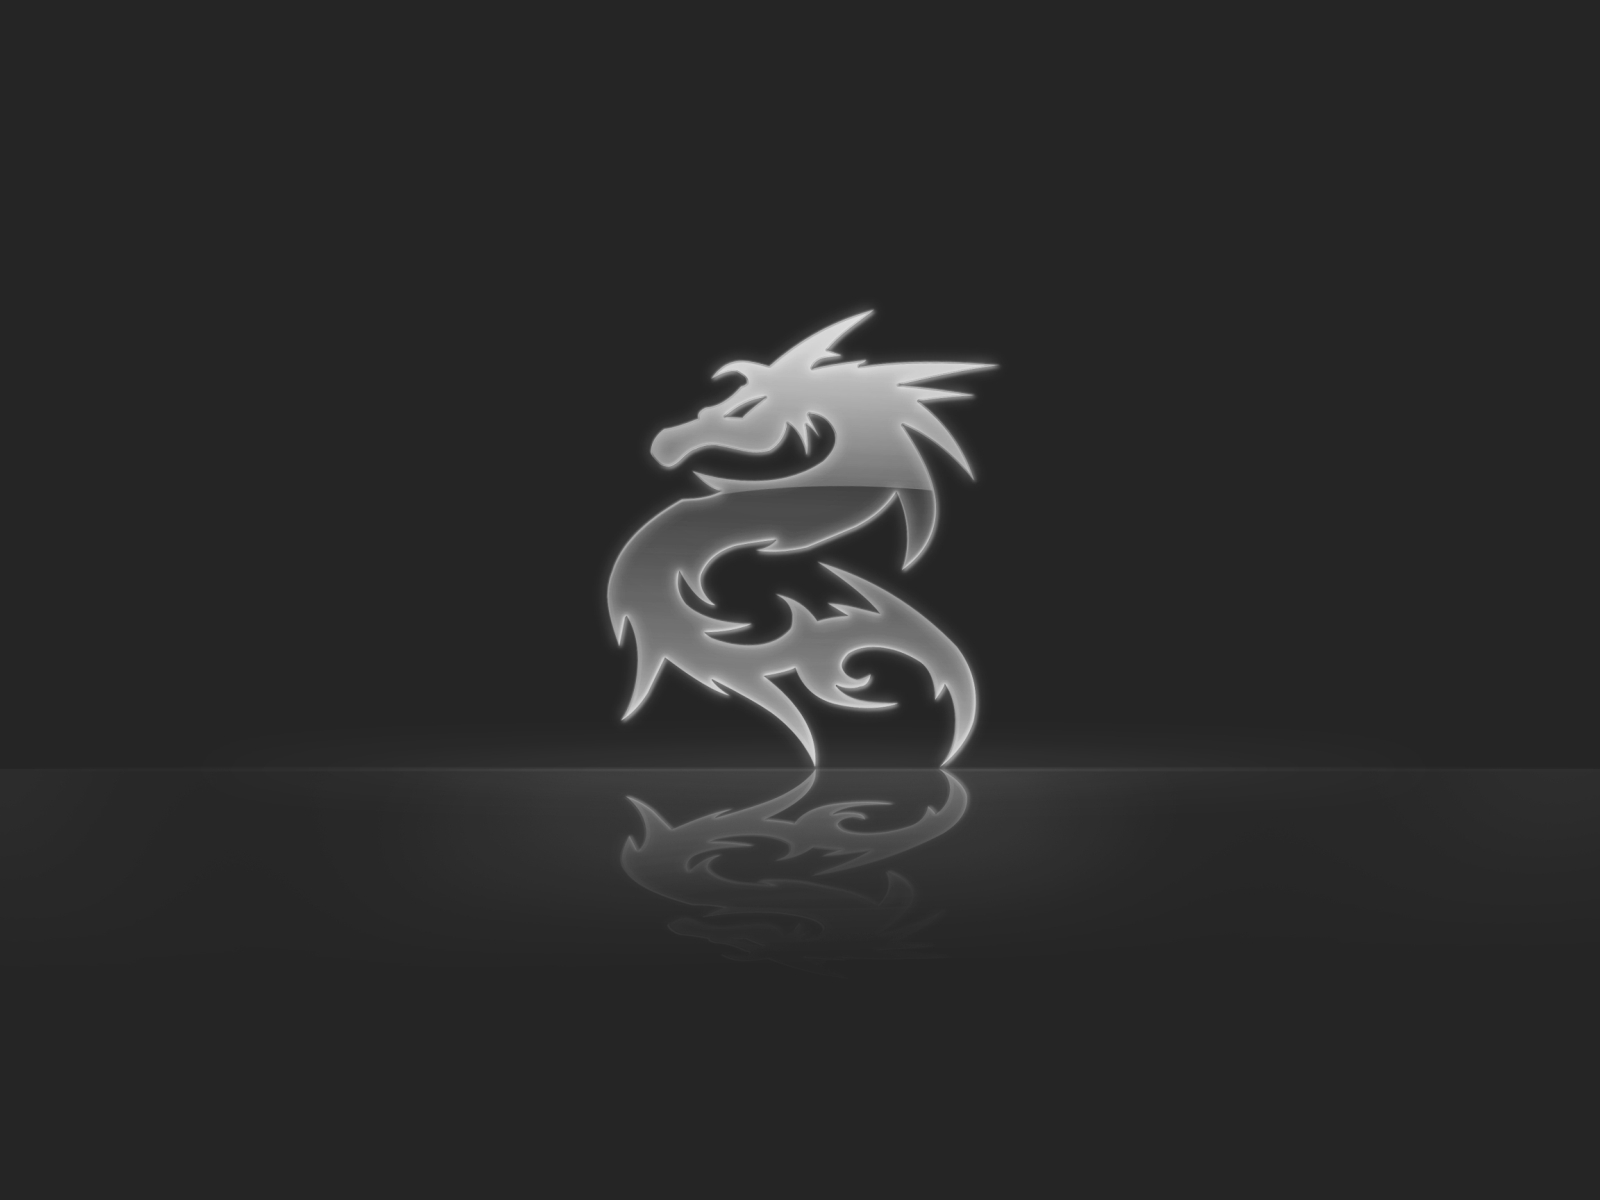 Dragon Wallpaper 013